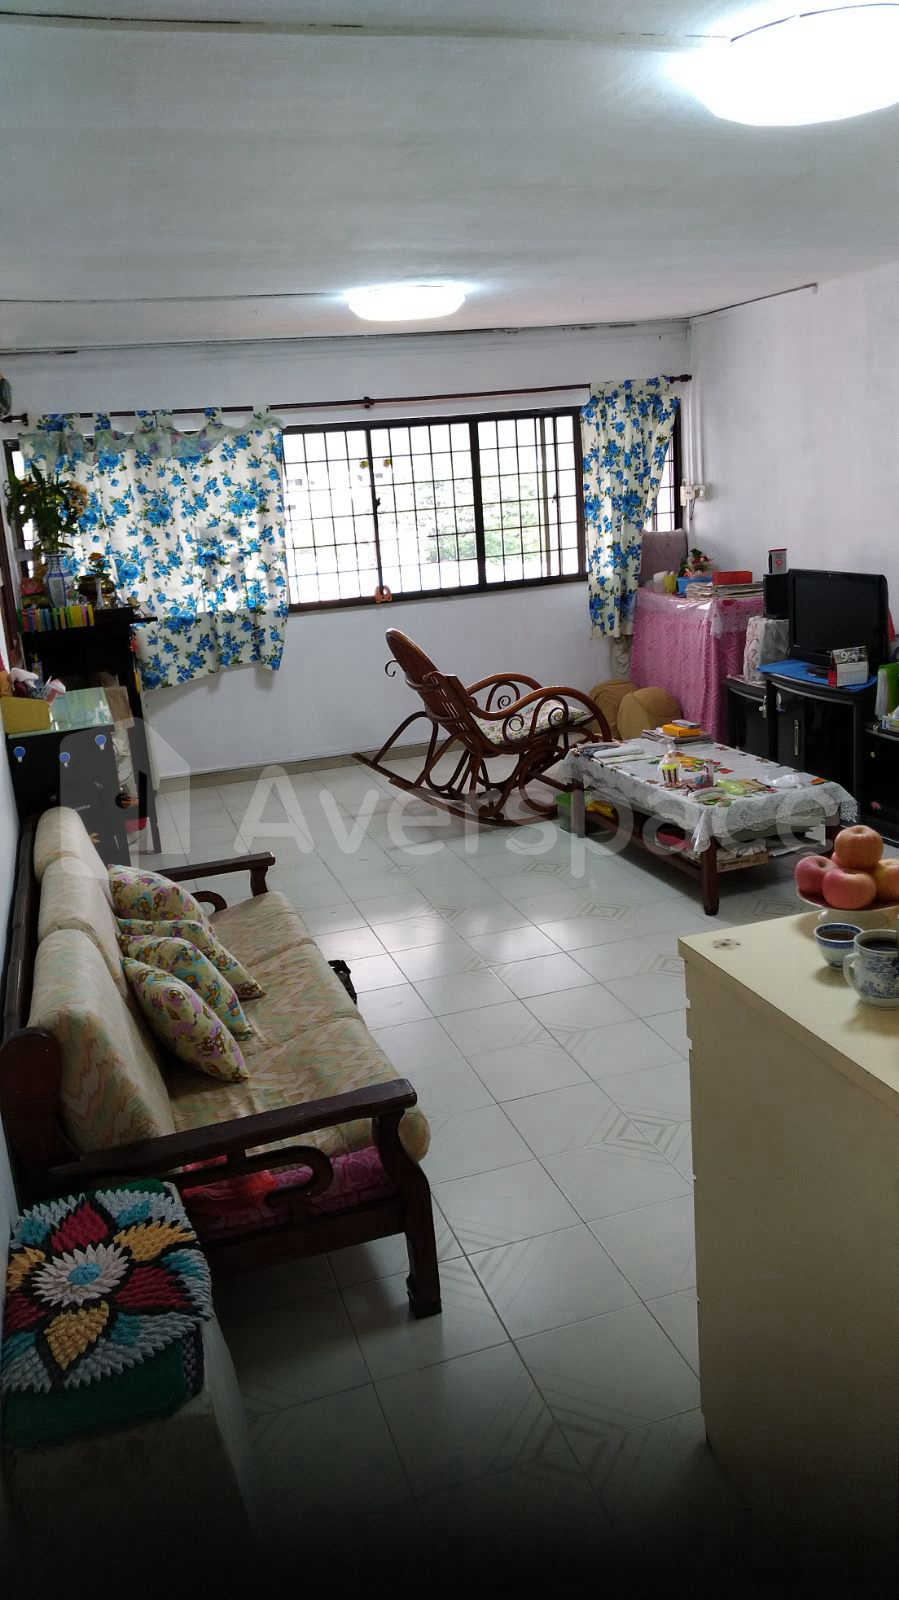 543 Jurong West Street 42, District 22 Singapore